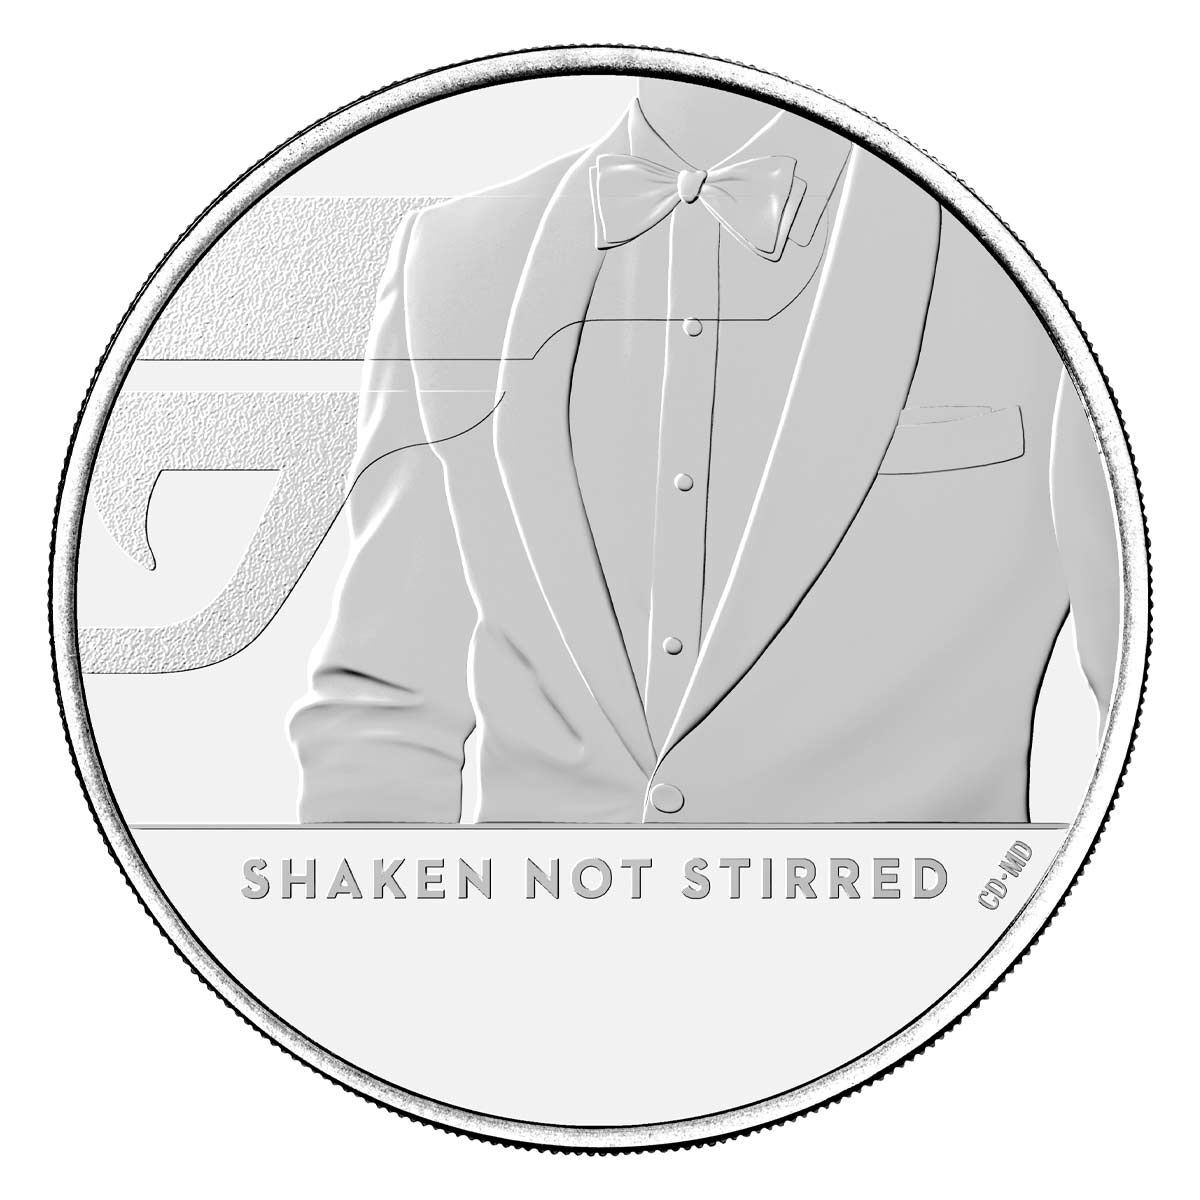 2020 £5 James Bond Shaken Not Stirred Brilliant Uncirculated Coin